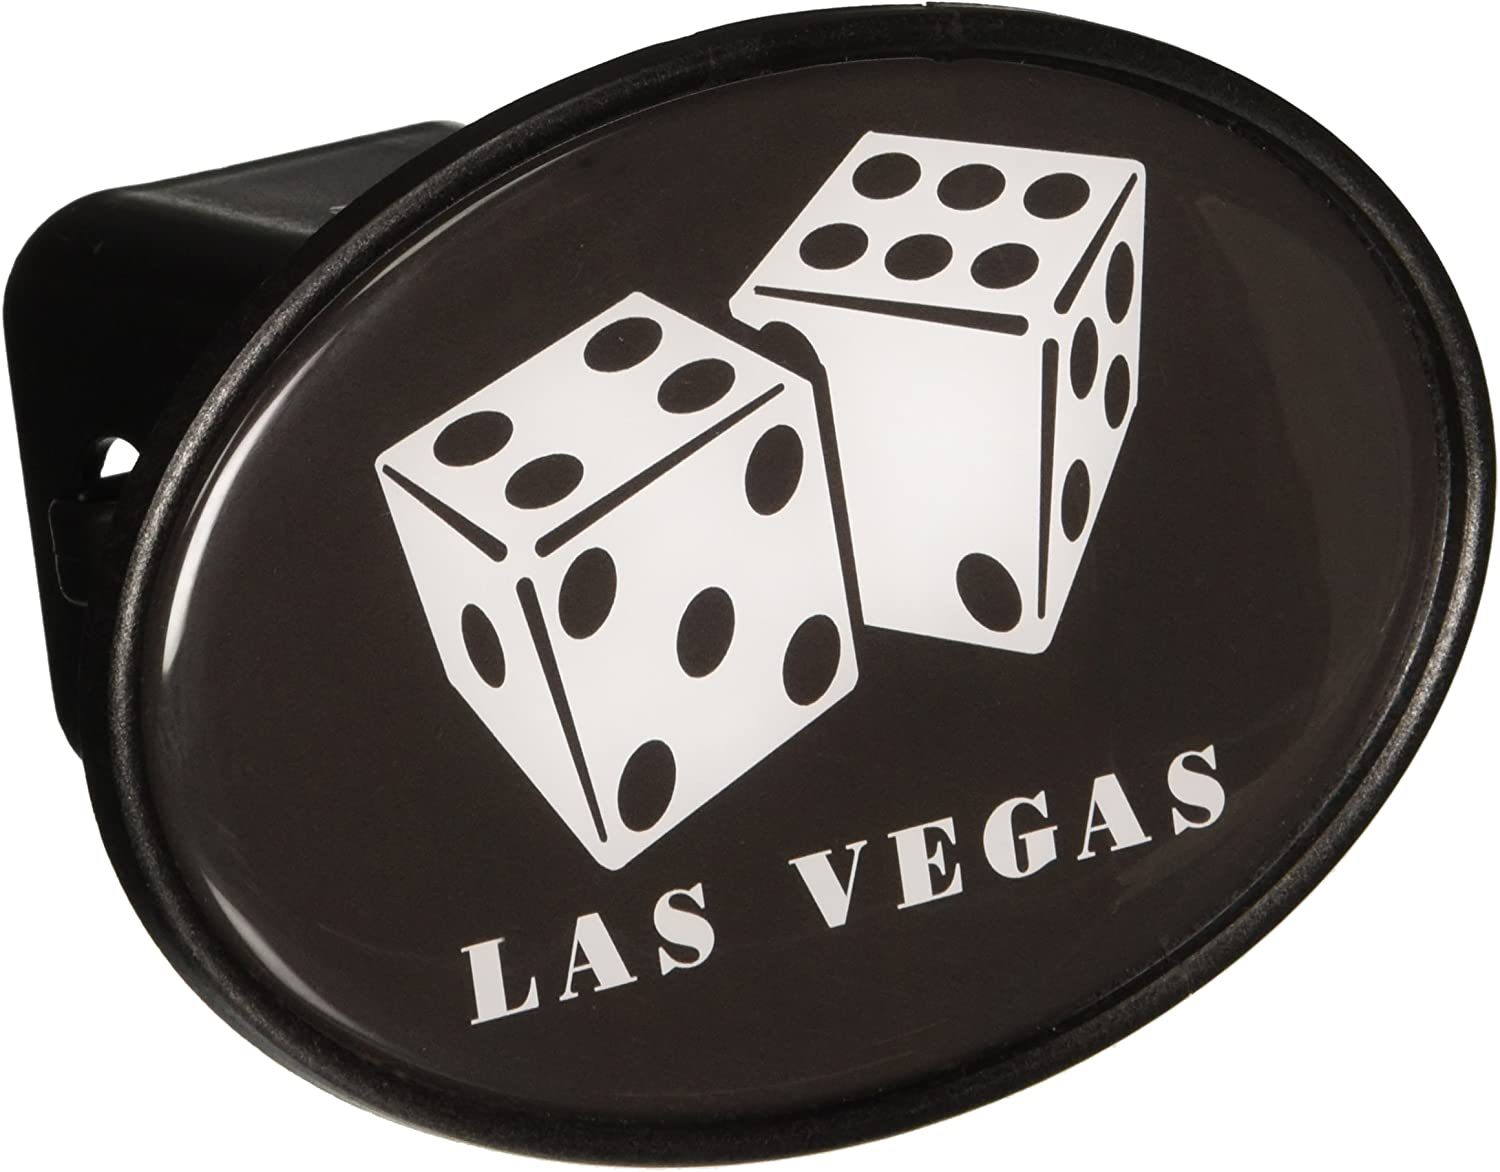 Knockout LV109 Las Vegas Image of Dice Hitch Cover